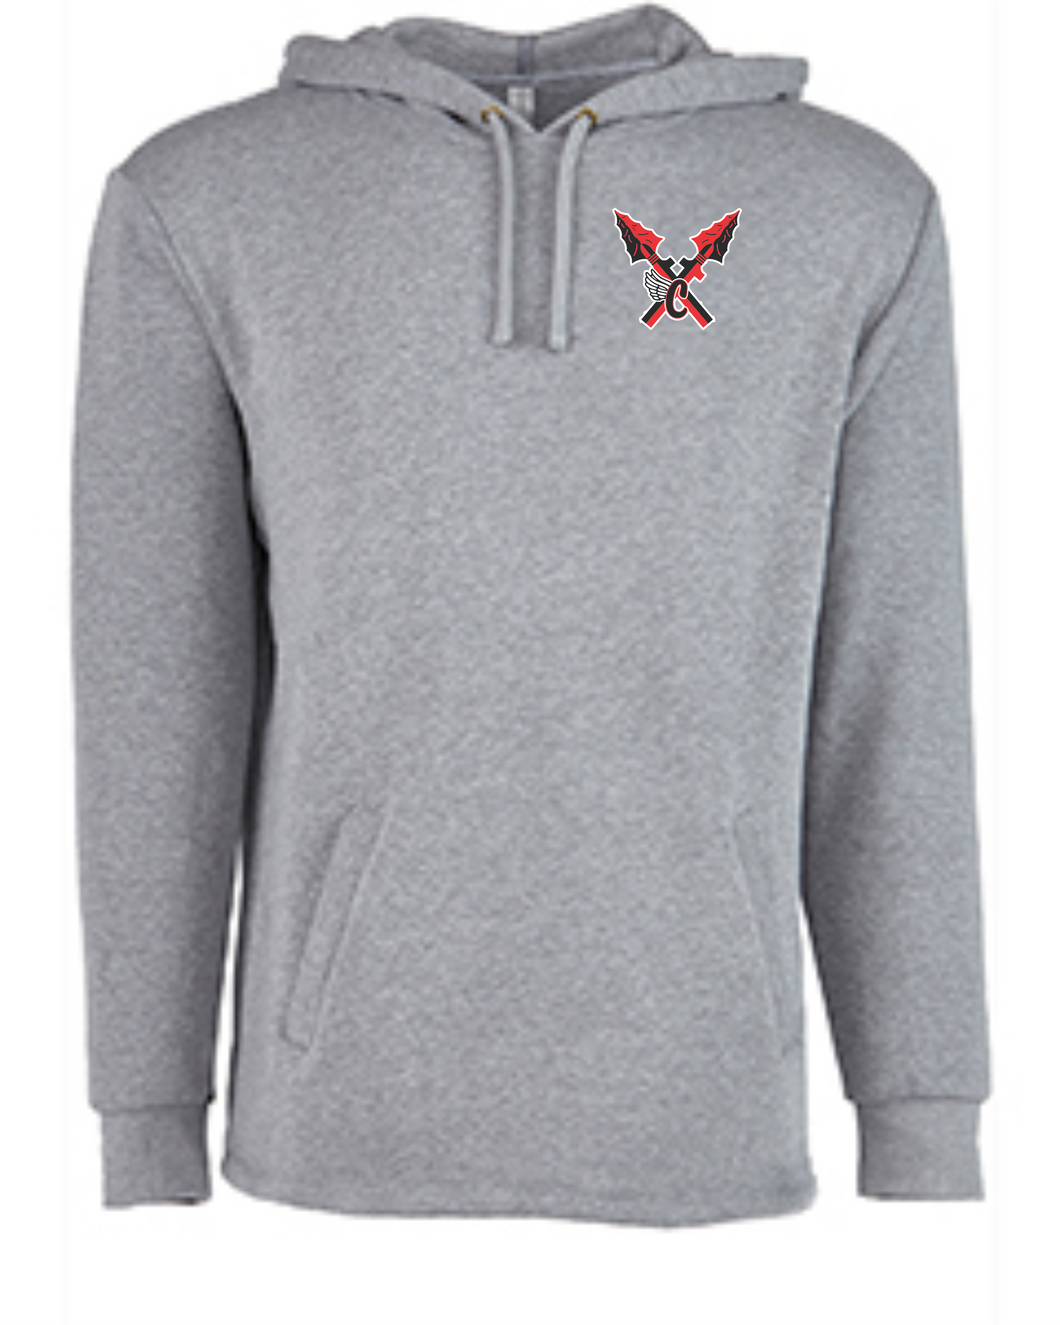 Item CHS-XC-314-3 - Next Level Adult PCH Pullover Hoodie - CHS Front XC Logo